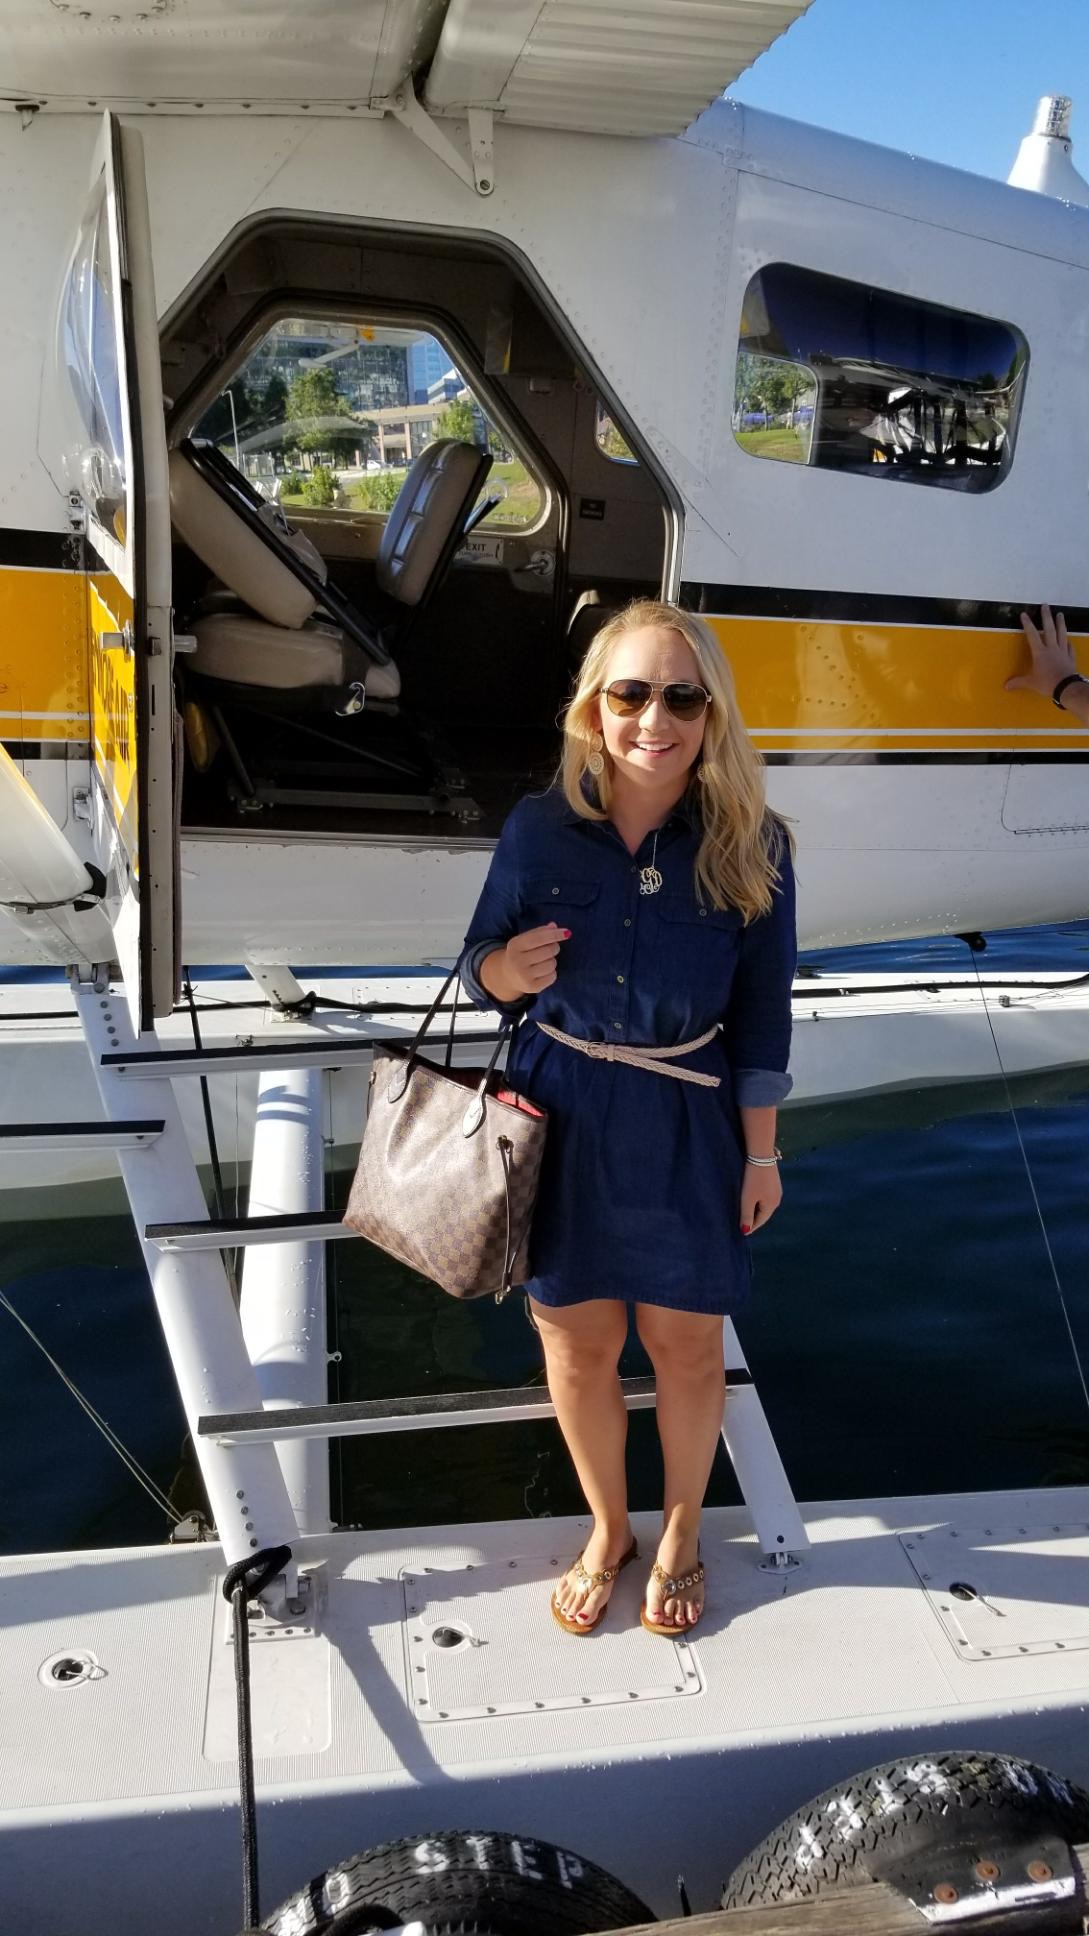 Sea Plane to Victoria #KenmoreAir #SeaPlane